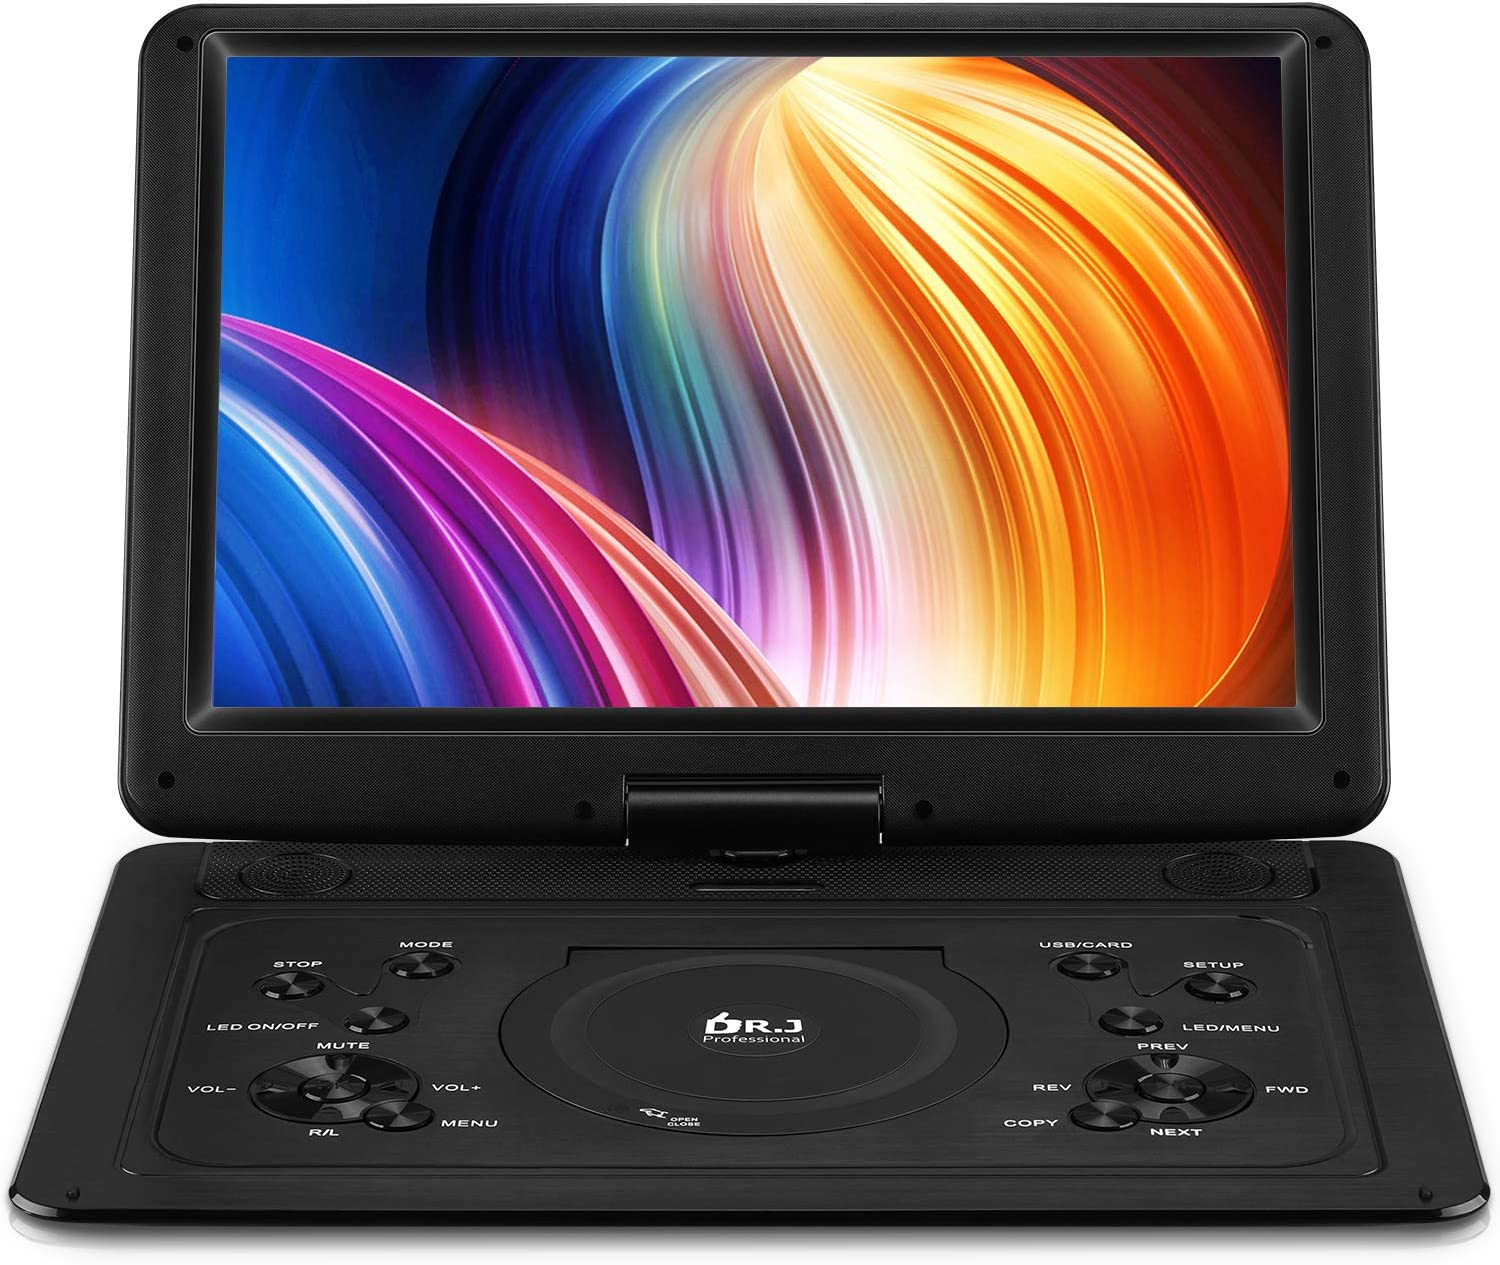 "DR. J 17.9"" Region Free Portable DVD Player with 6 Hours Rechargeable Battery, Large 15.4"" Screen DVD Player Sync TV Support USB/SD Card and Multiple Disc Formats, High Volume Speaker Black"